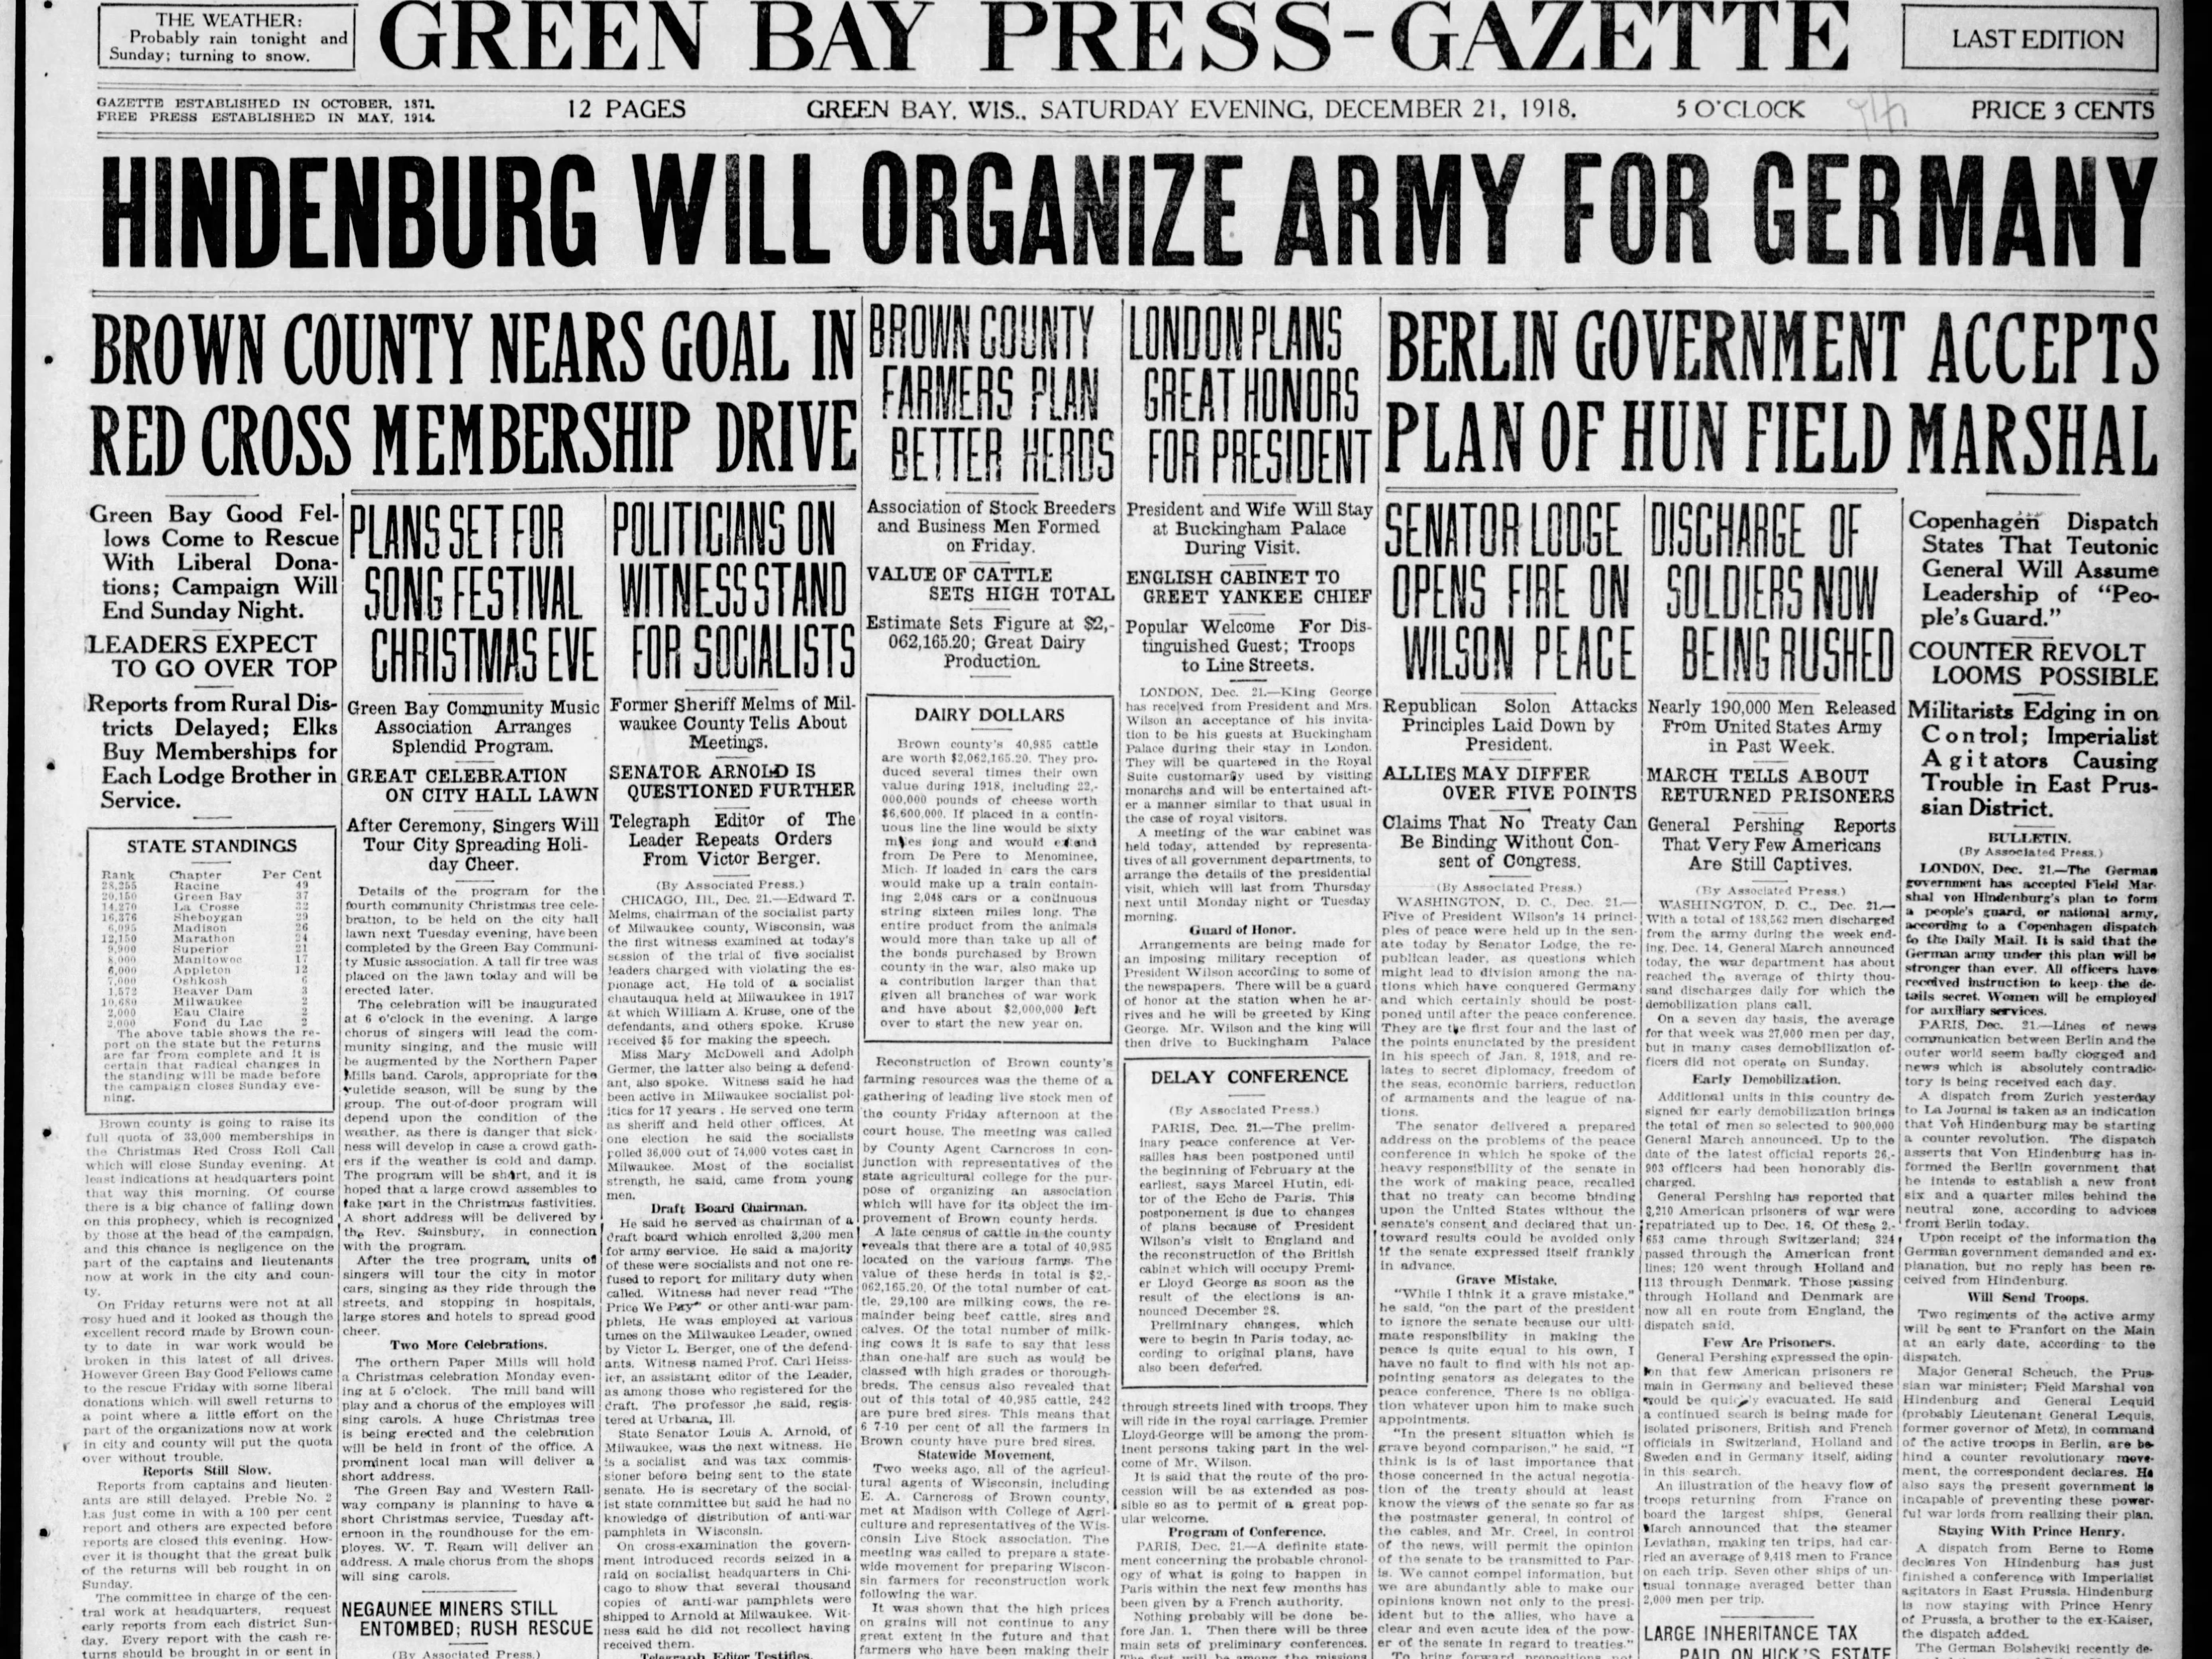 Today in History: Dec. 21, 1918